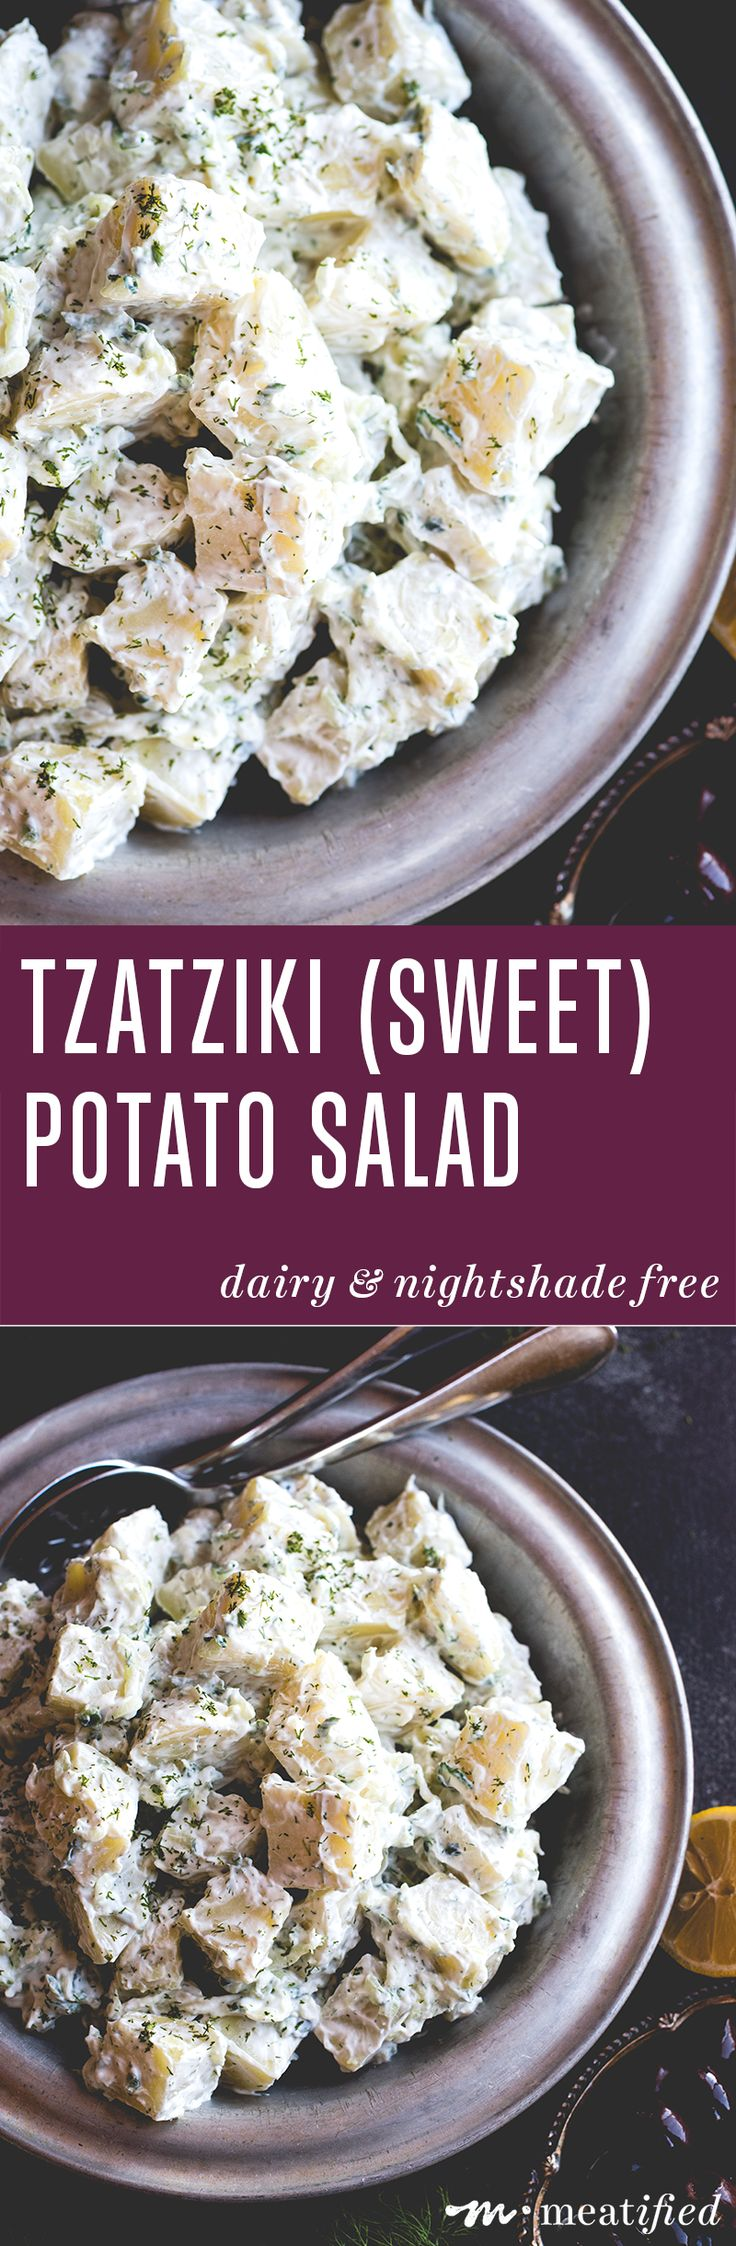 Cool and creamy tzatziki meets white sweet potatoes to make this simple, summery & nightshade free tzatziki potato salad from http://meatified.com. It's the perfect side for grilling!